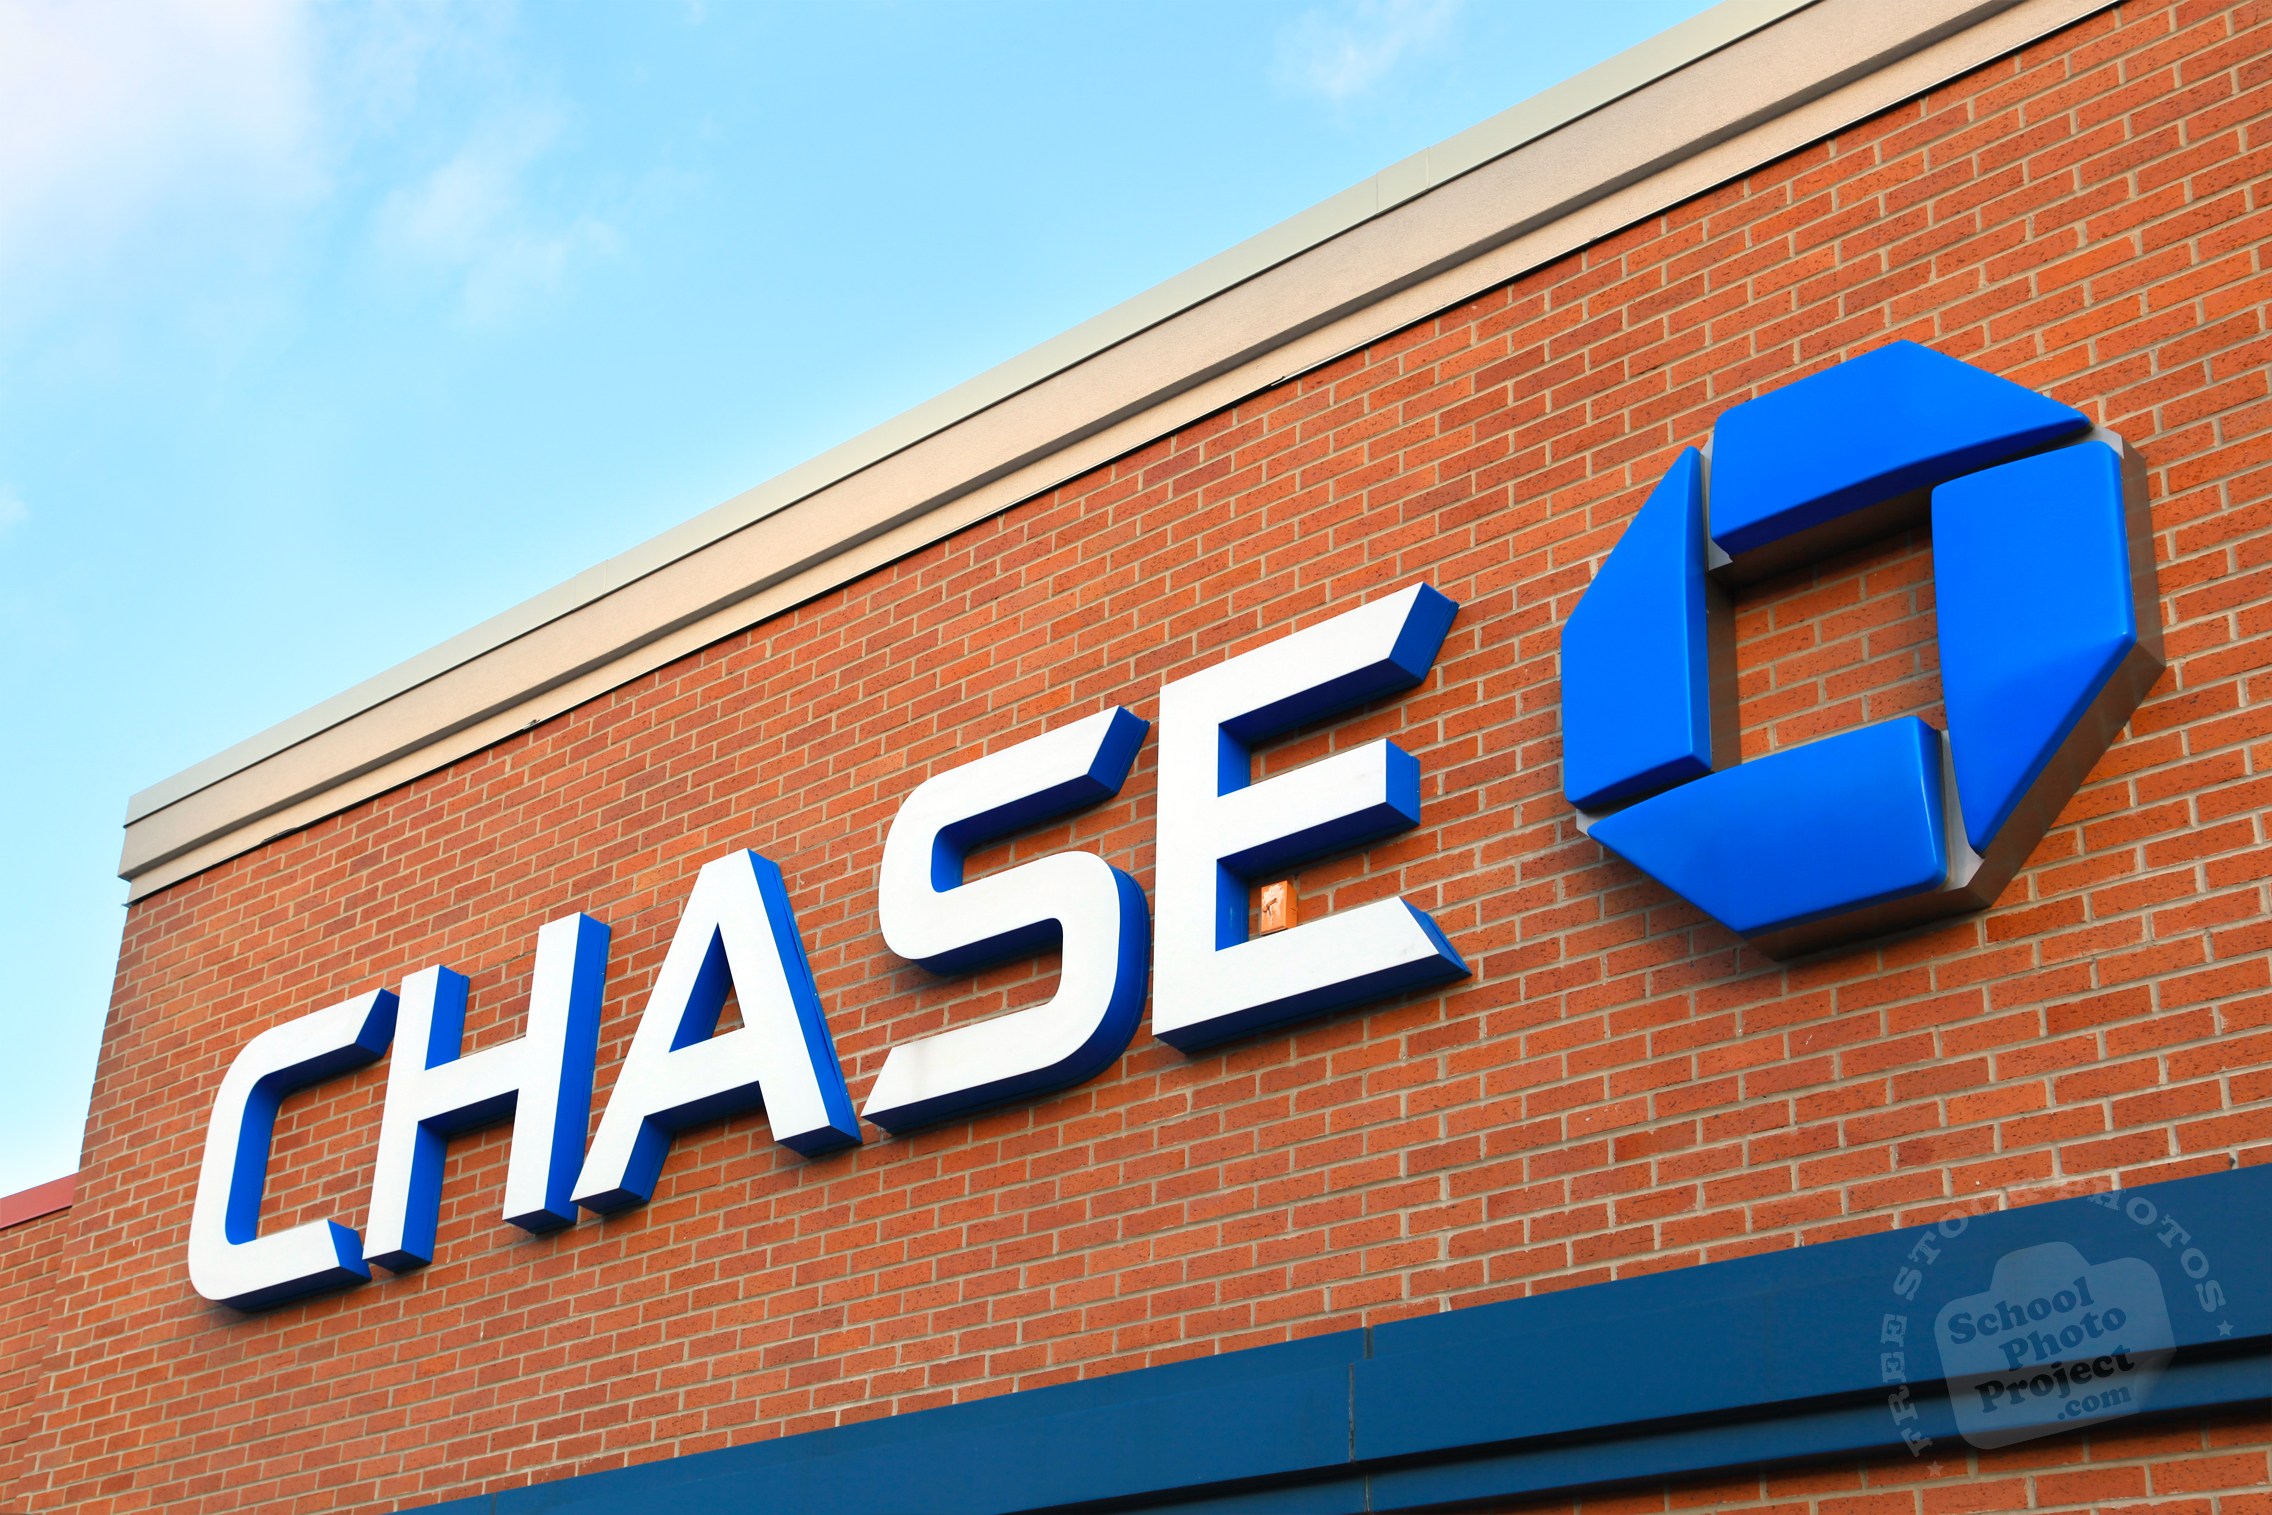 Exceptional Chase, Logo, Brand, Identity, Banking, Money, Free Stock Photo,